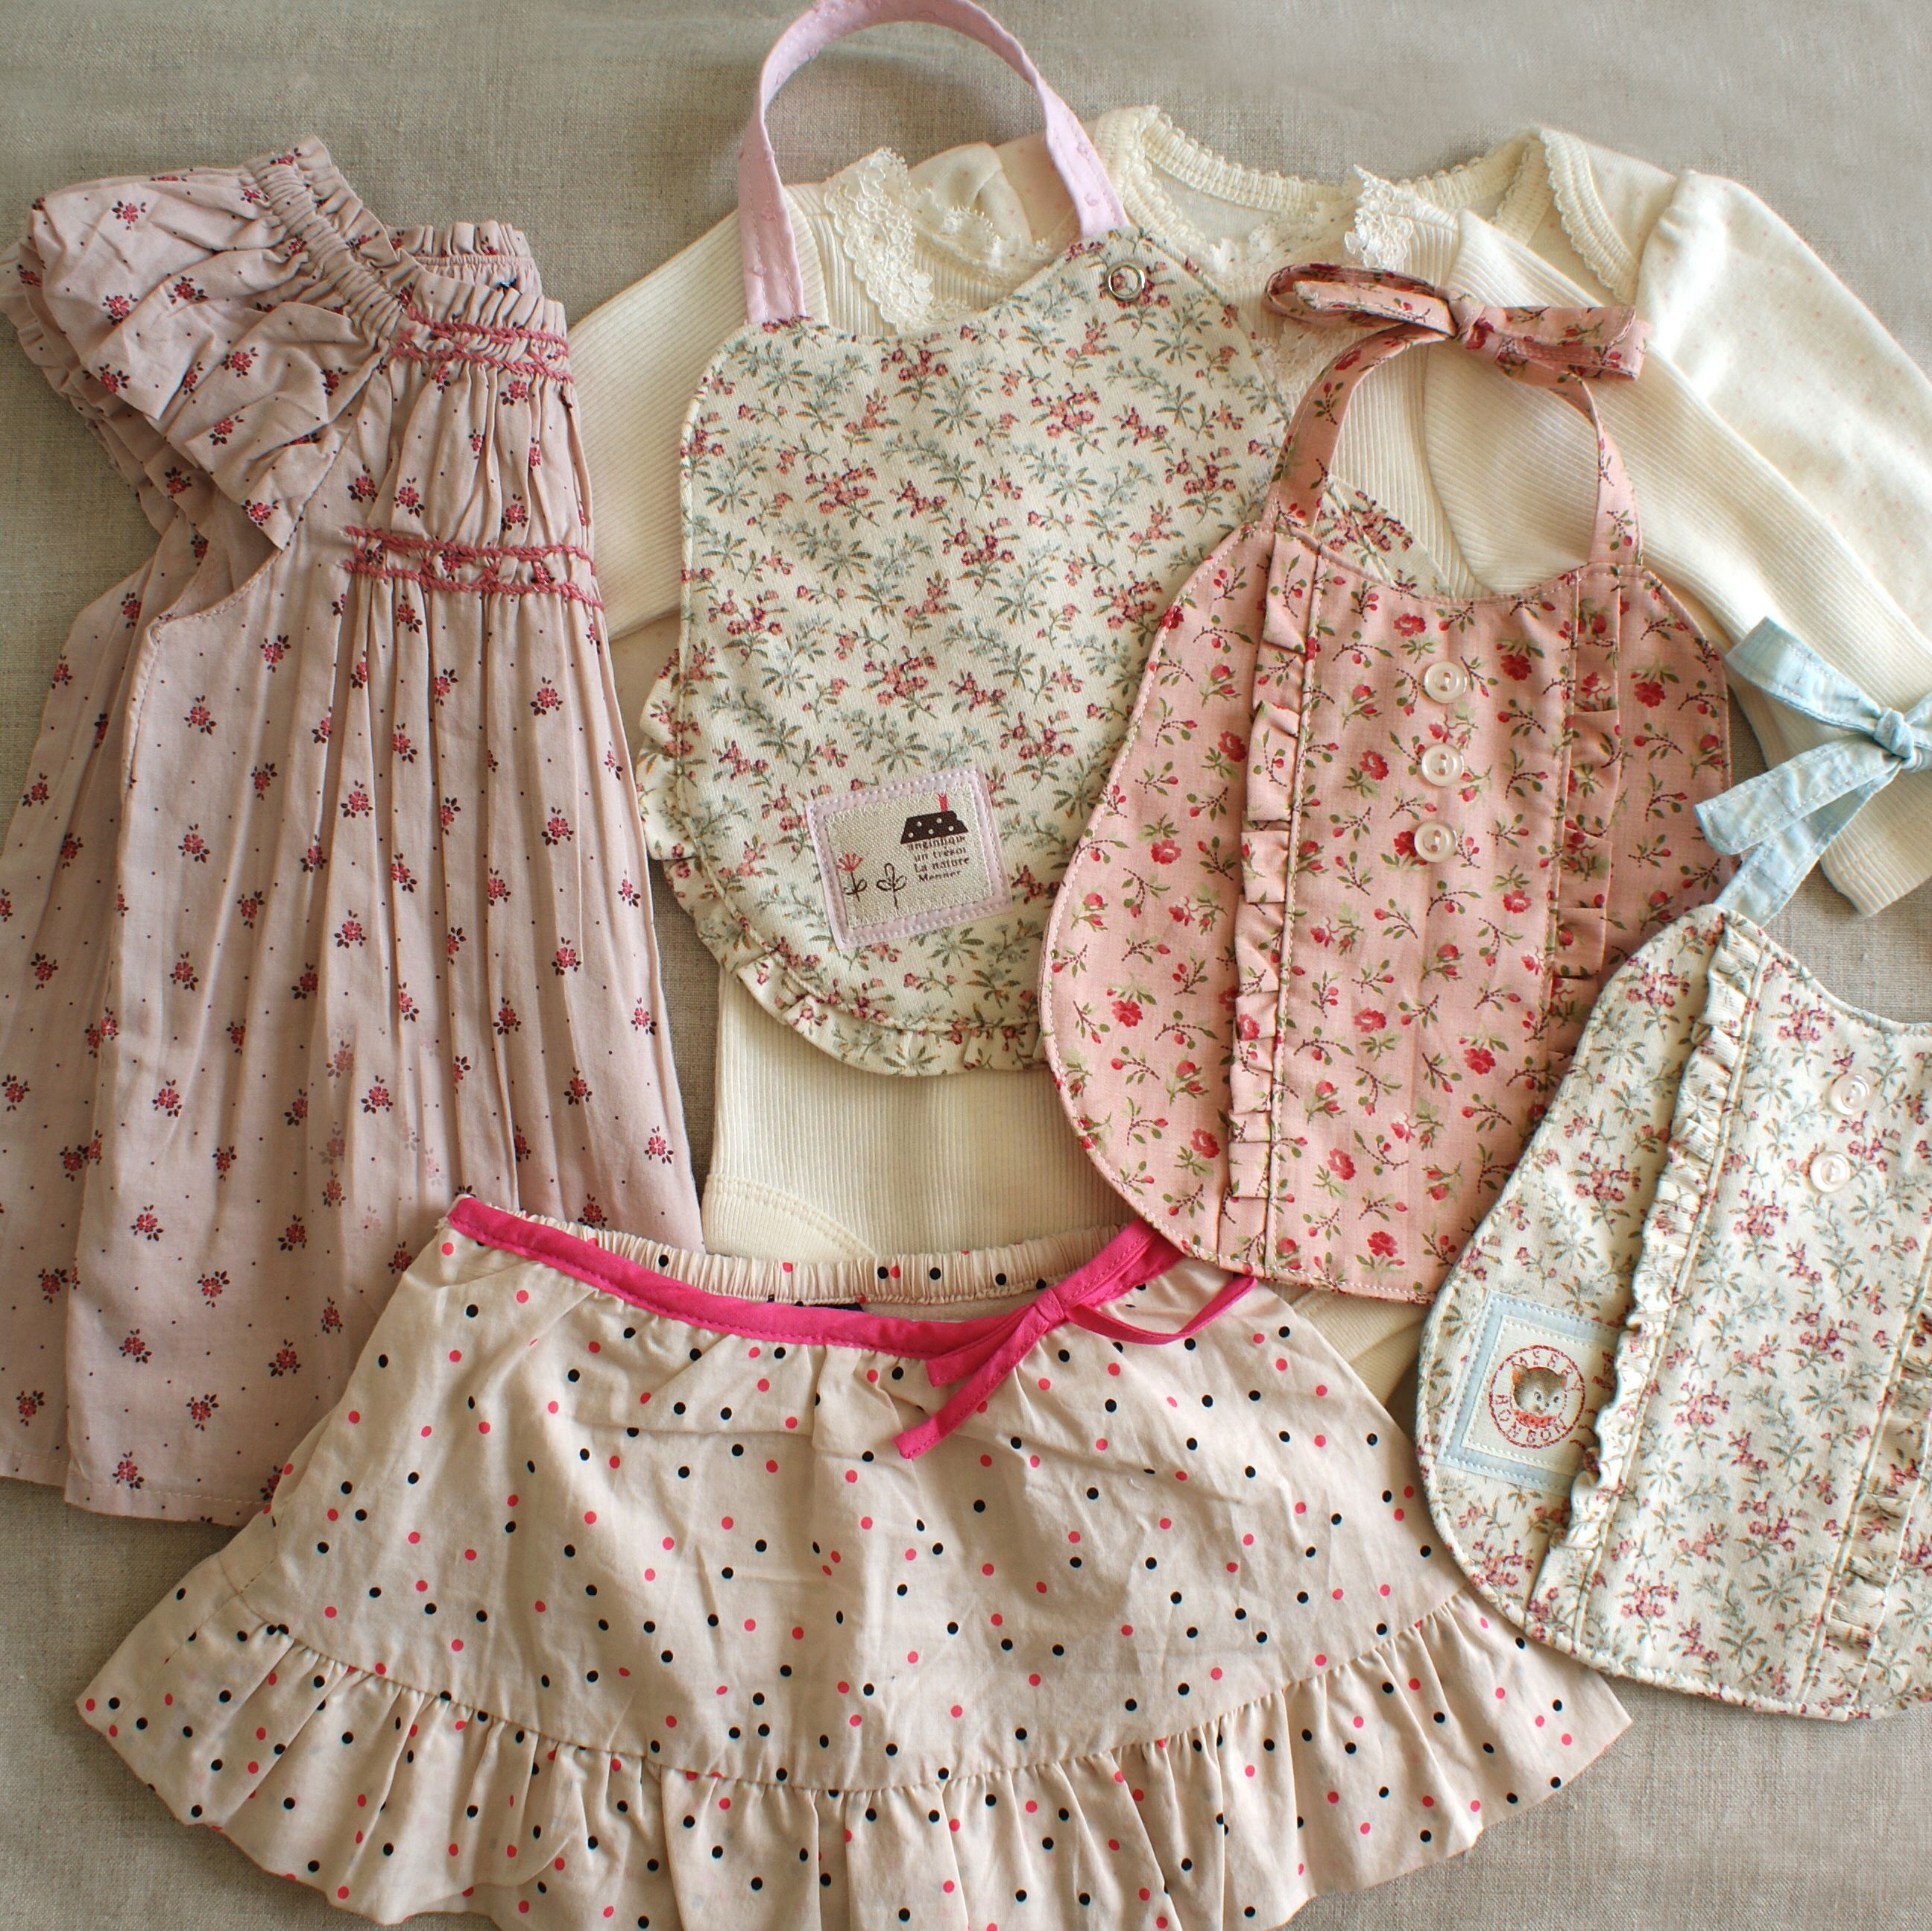 Delicate little feminine bibs and clothes Someday I am going to sew